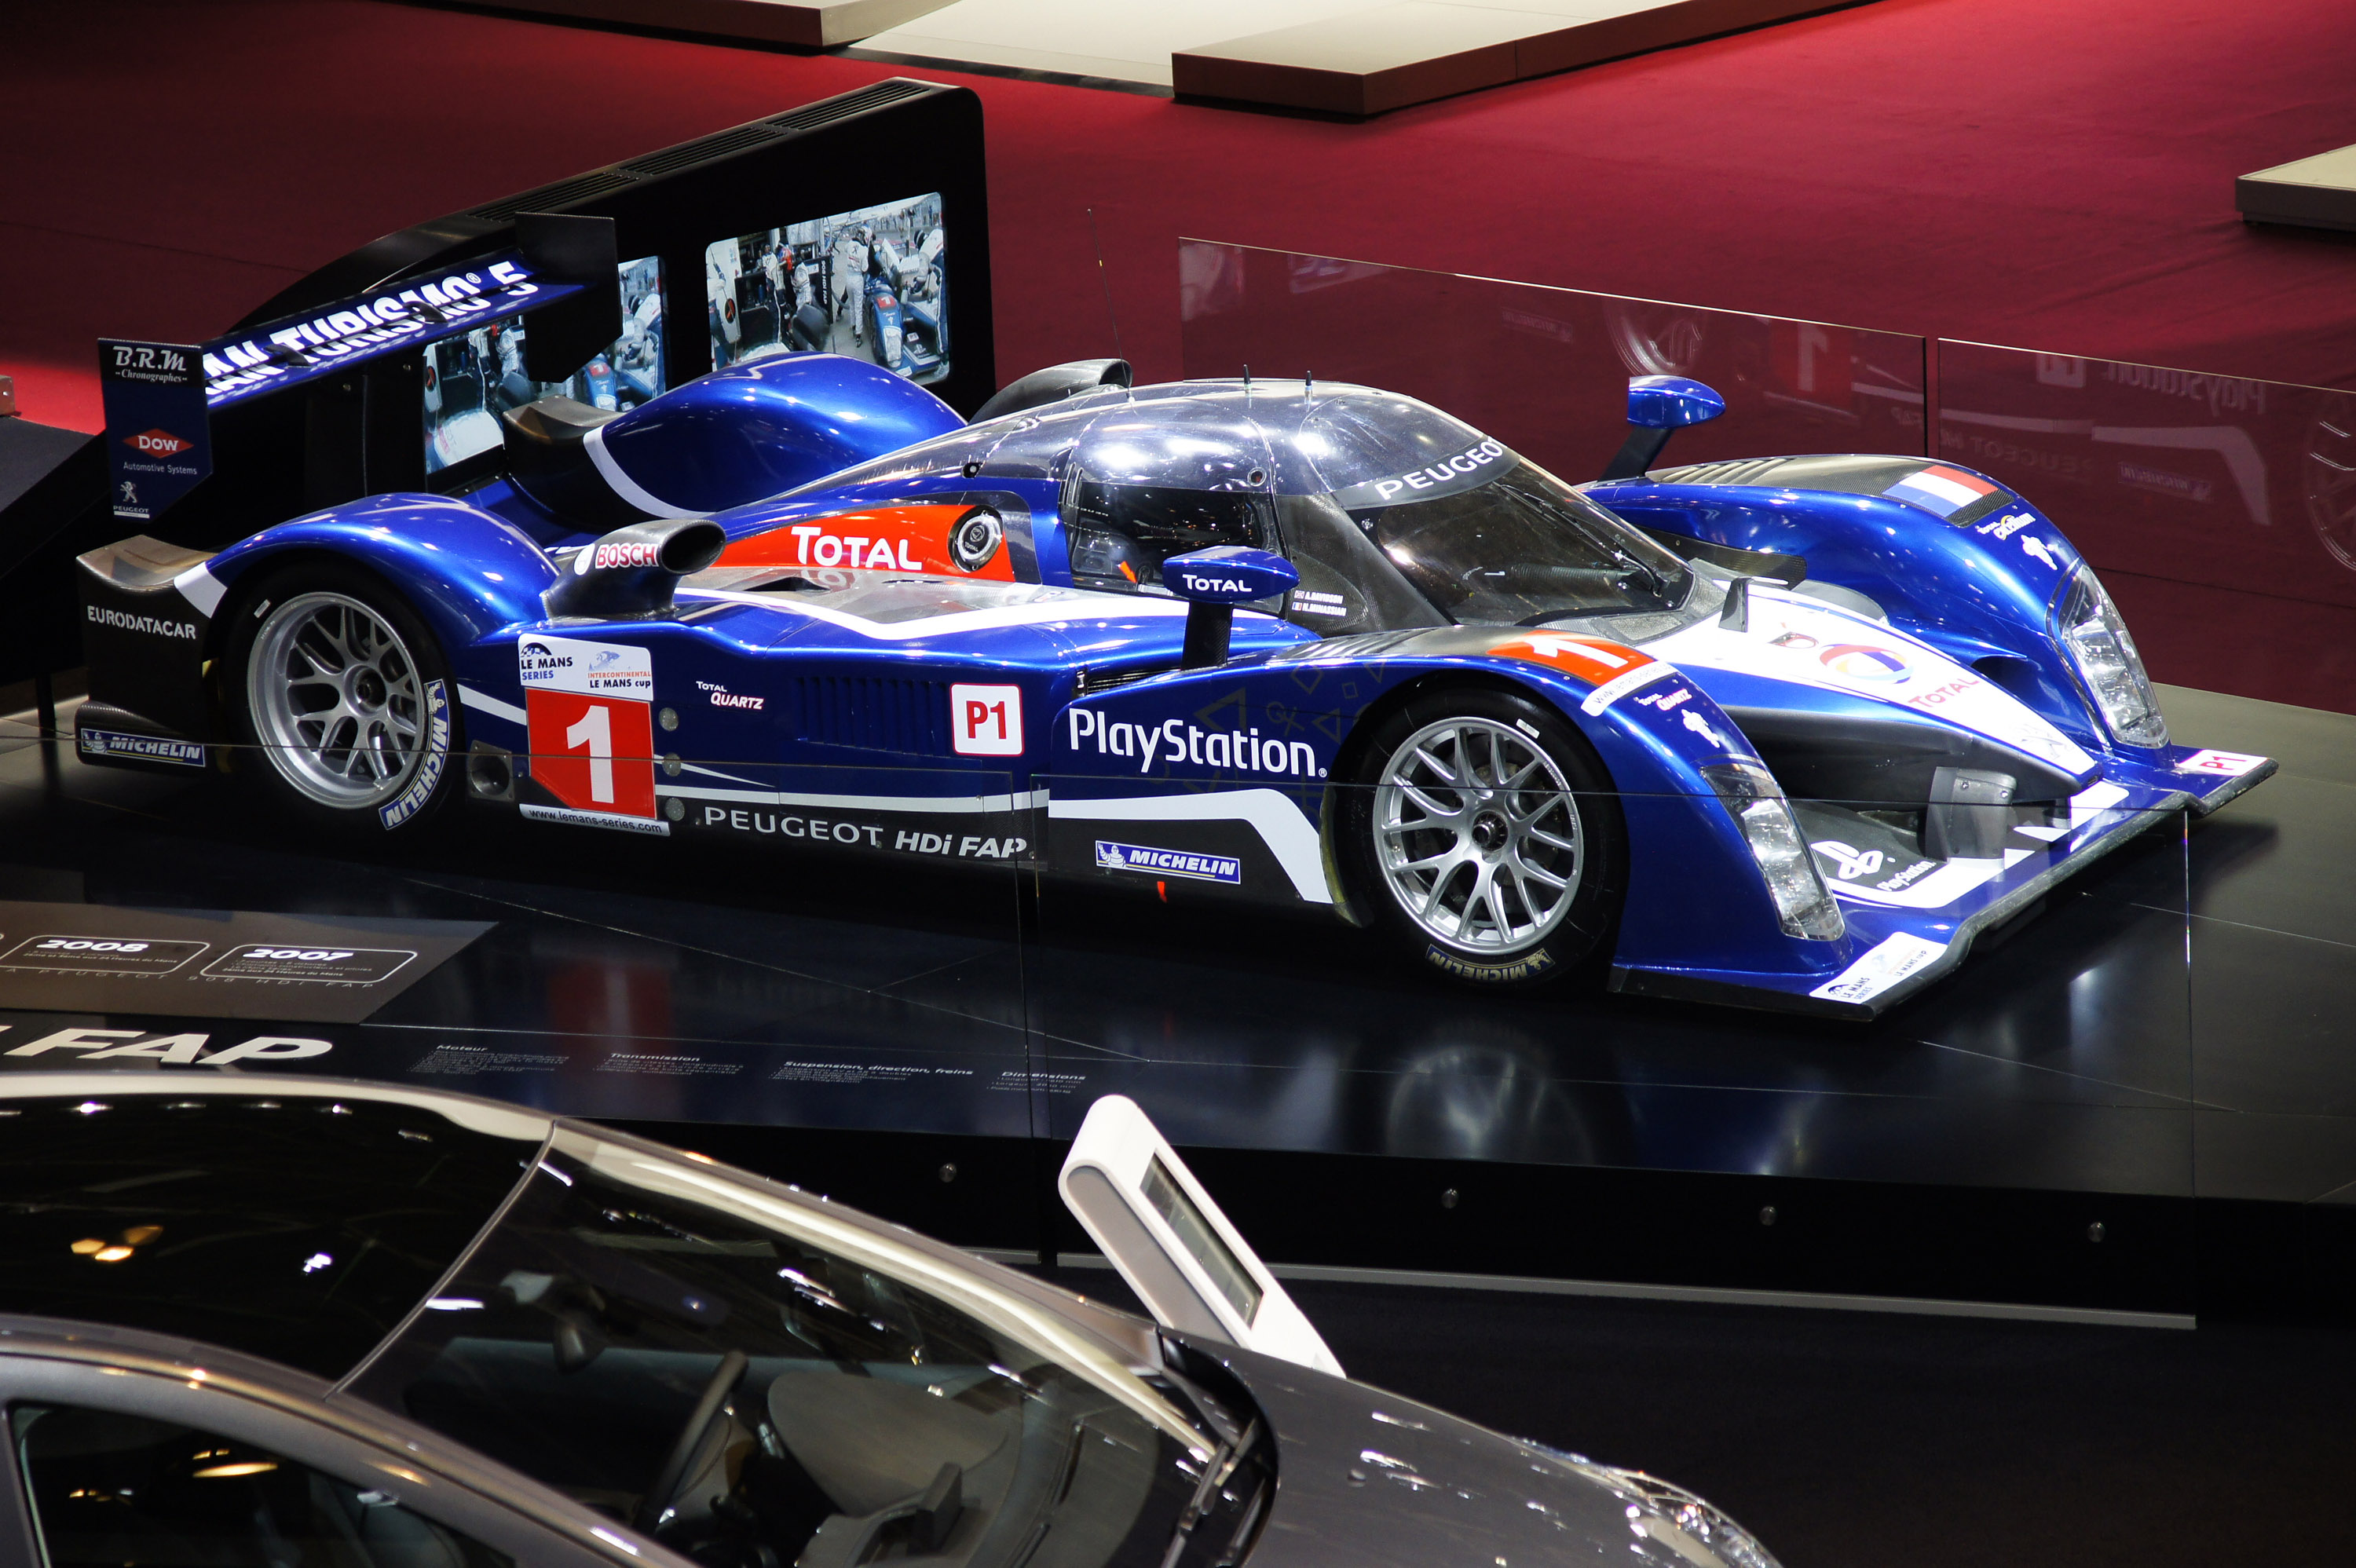 Peugeot 908 HDi FAP Paris 2010 - Picture 43311